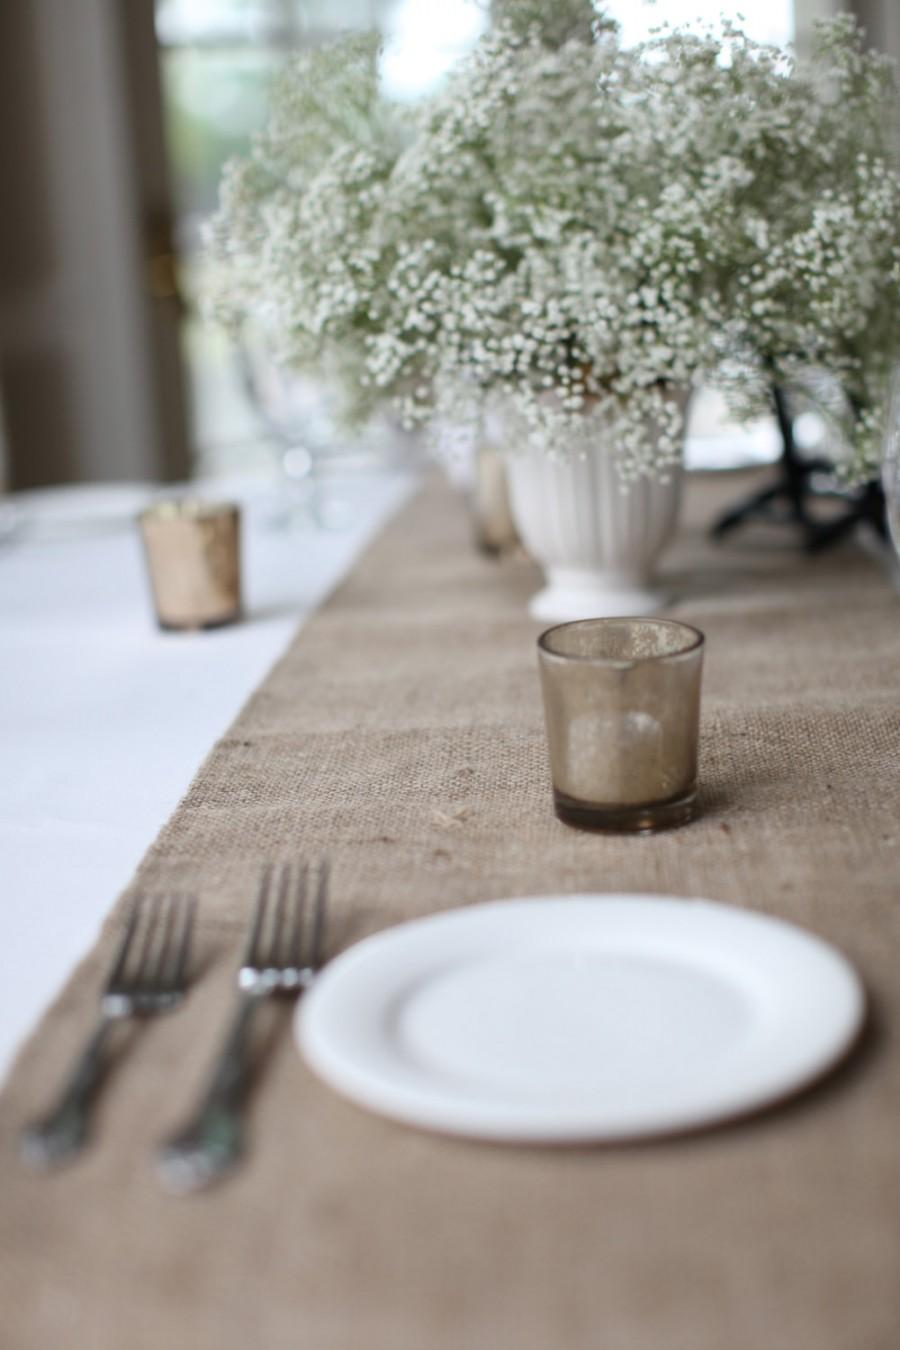 Свадьба - Simple and Chic Hemmed Burlap Table Runner Thanksgiving Table Runner Rustic Home Decor Custom Sizes Available